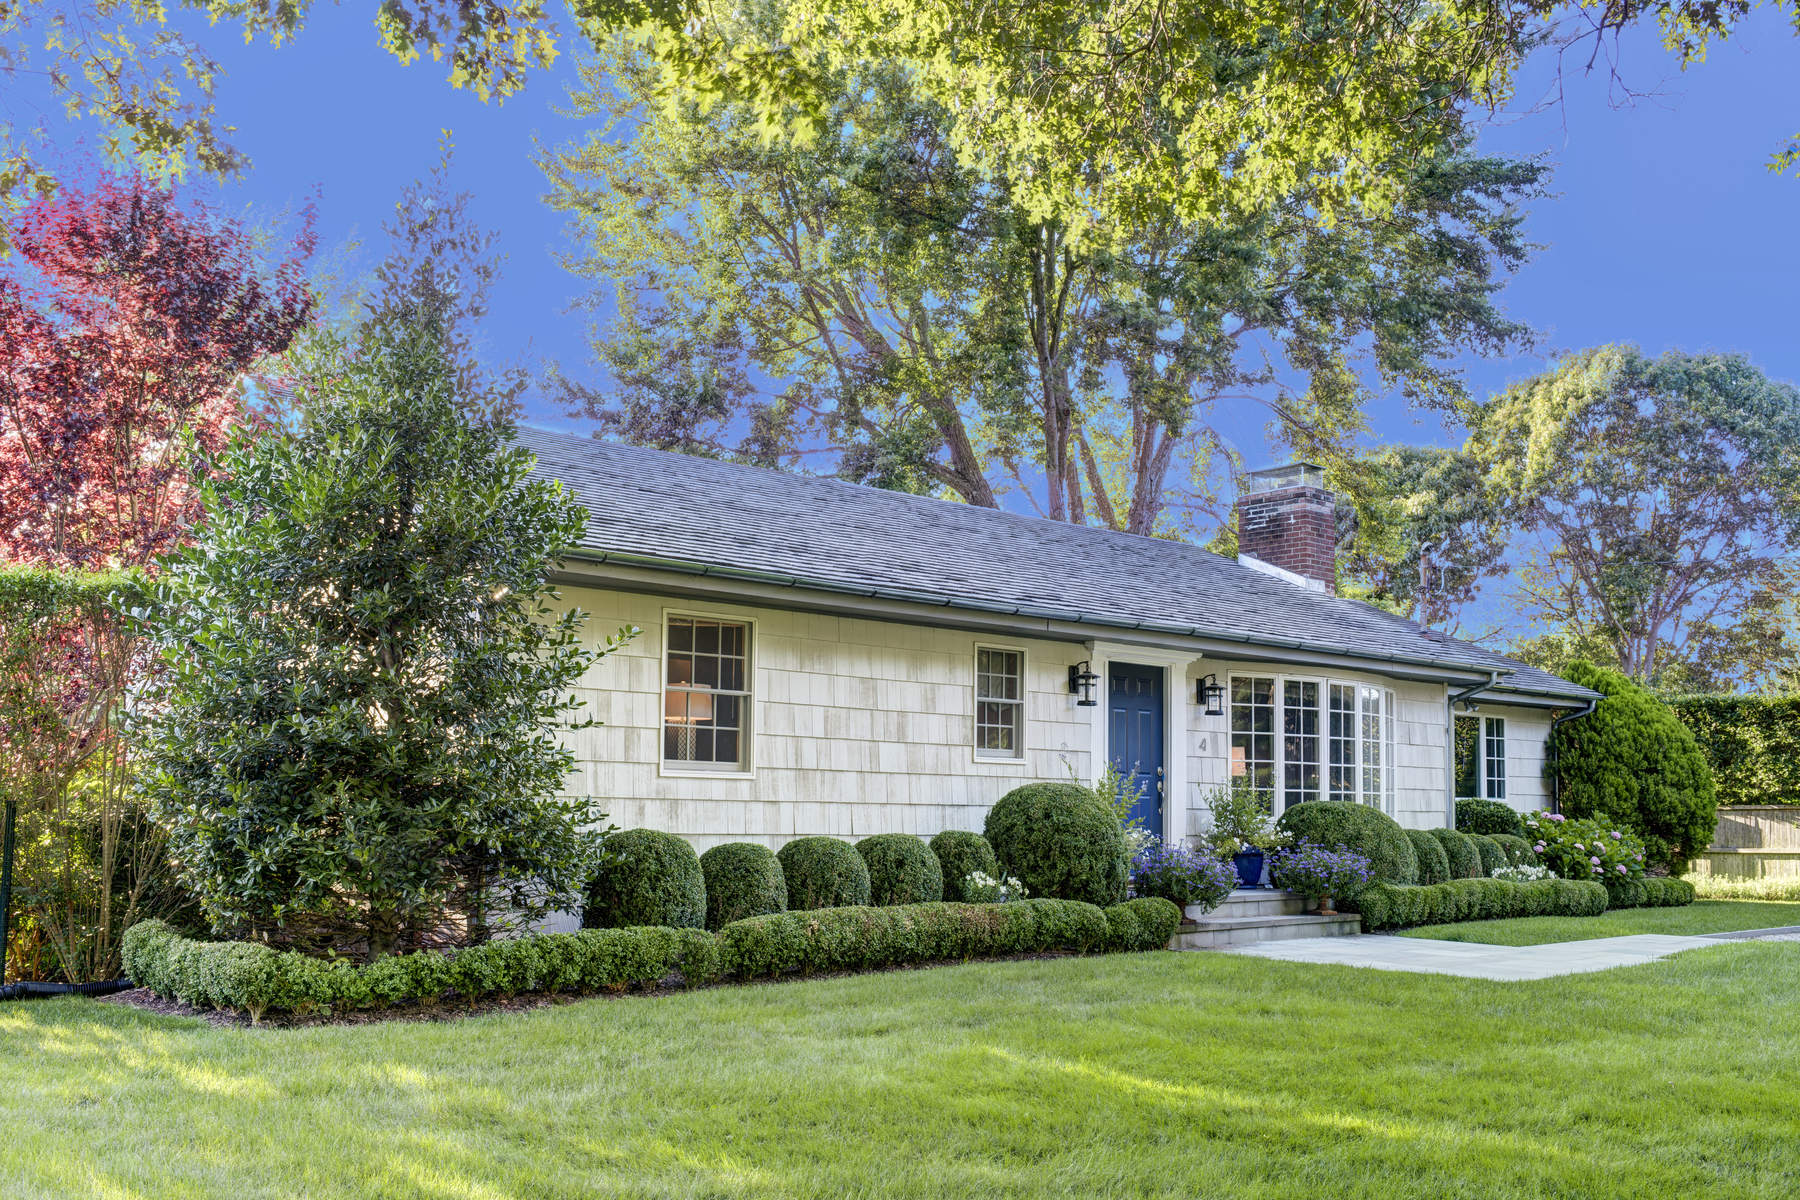 Single Family Home for Rent at Chic Mid Century Ranch 4 Harvard Road Sag Harbor, New York 11963 United States